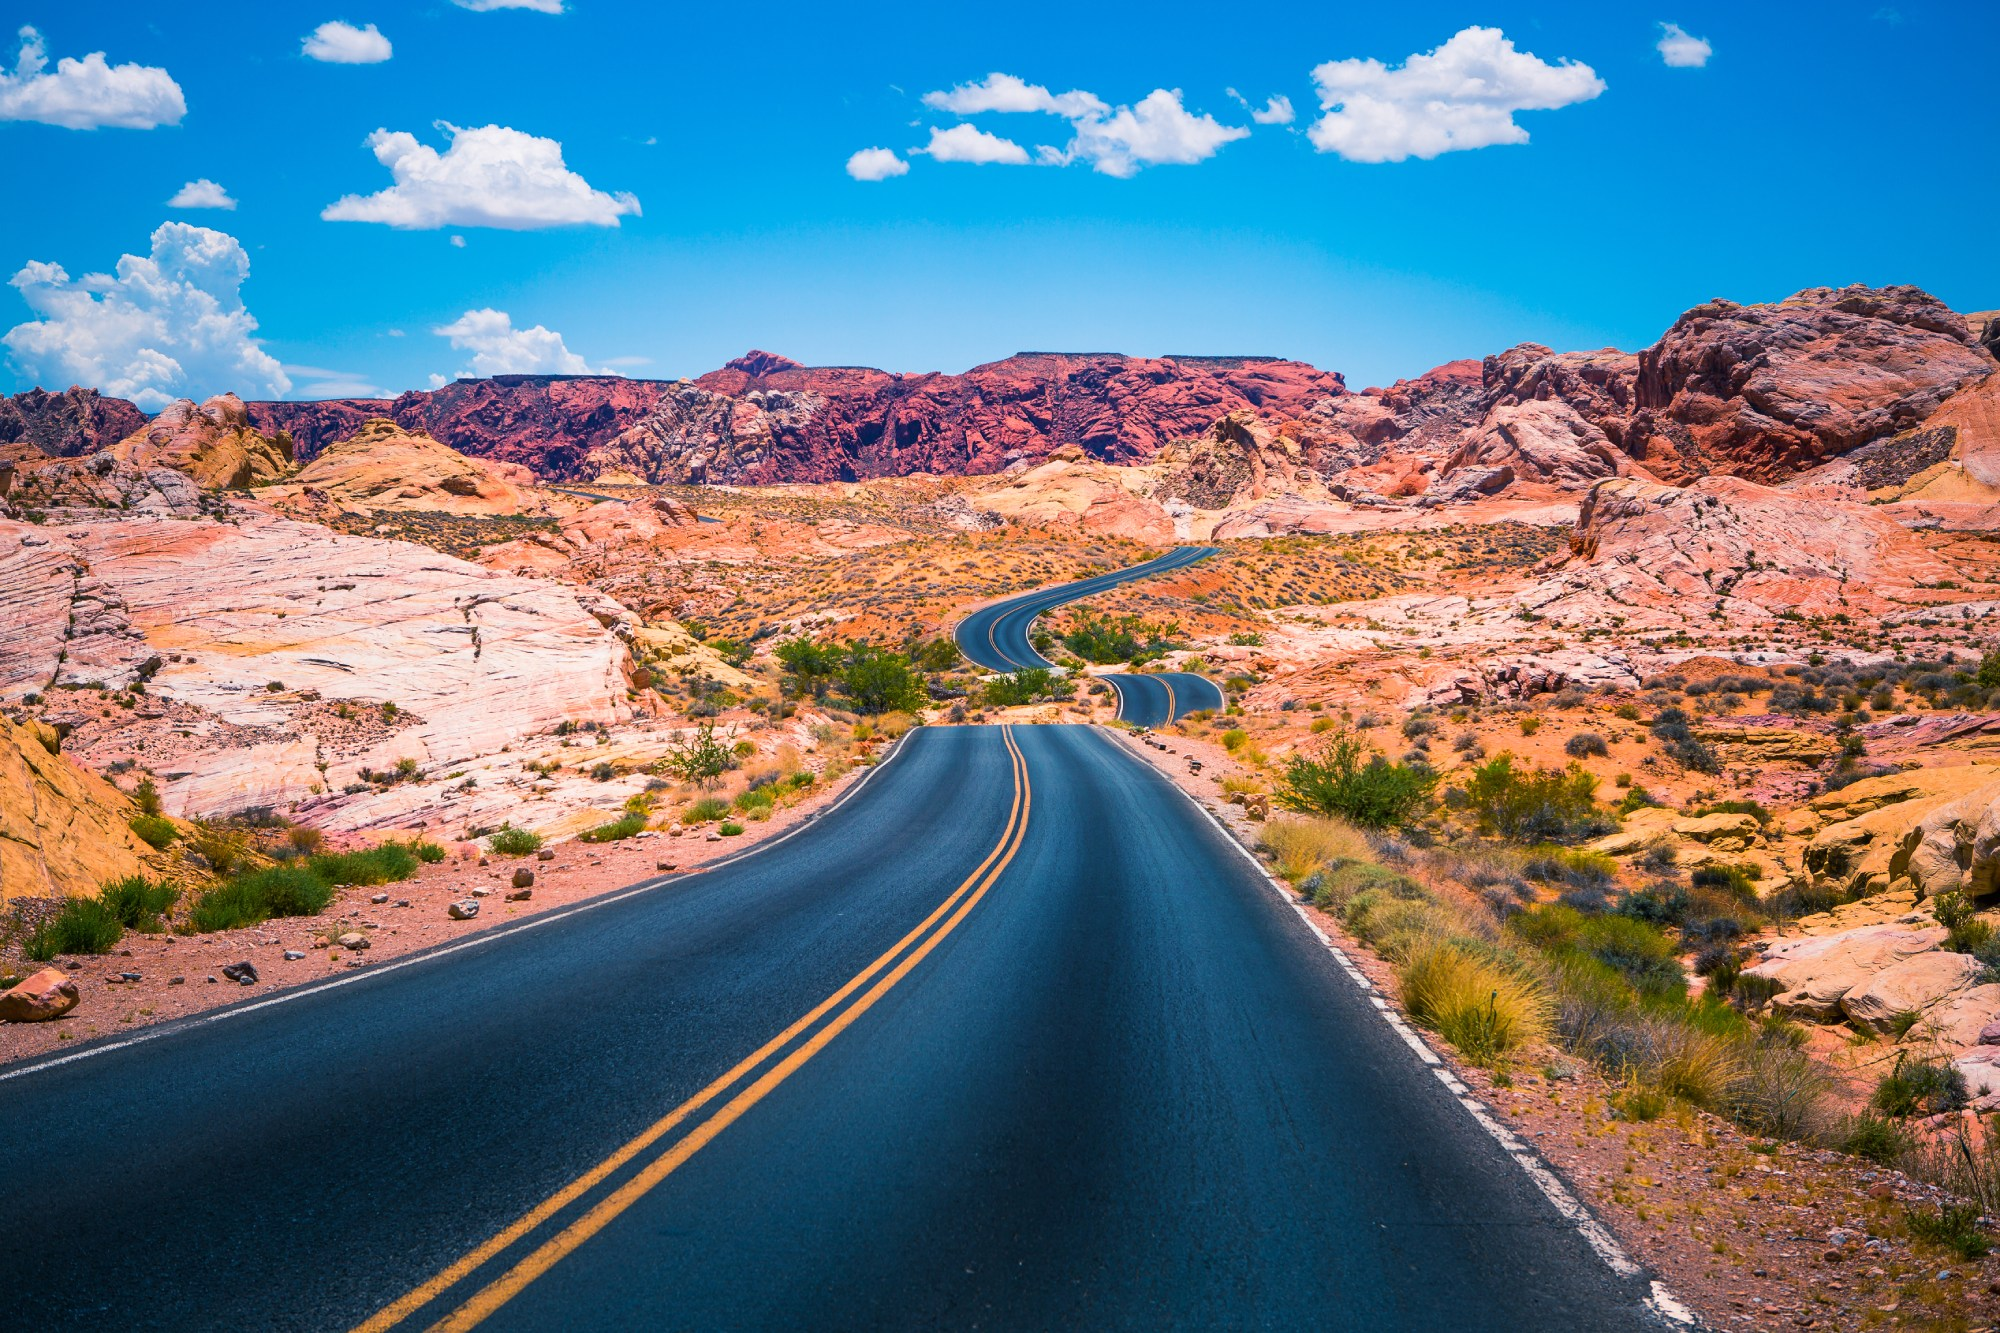 nevada travel and photography guide image